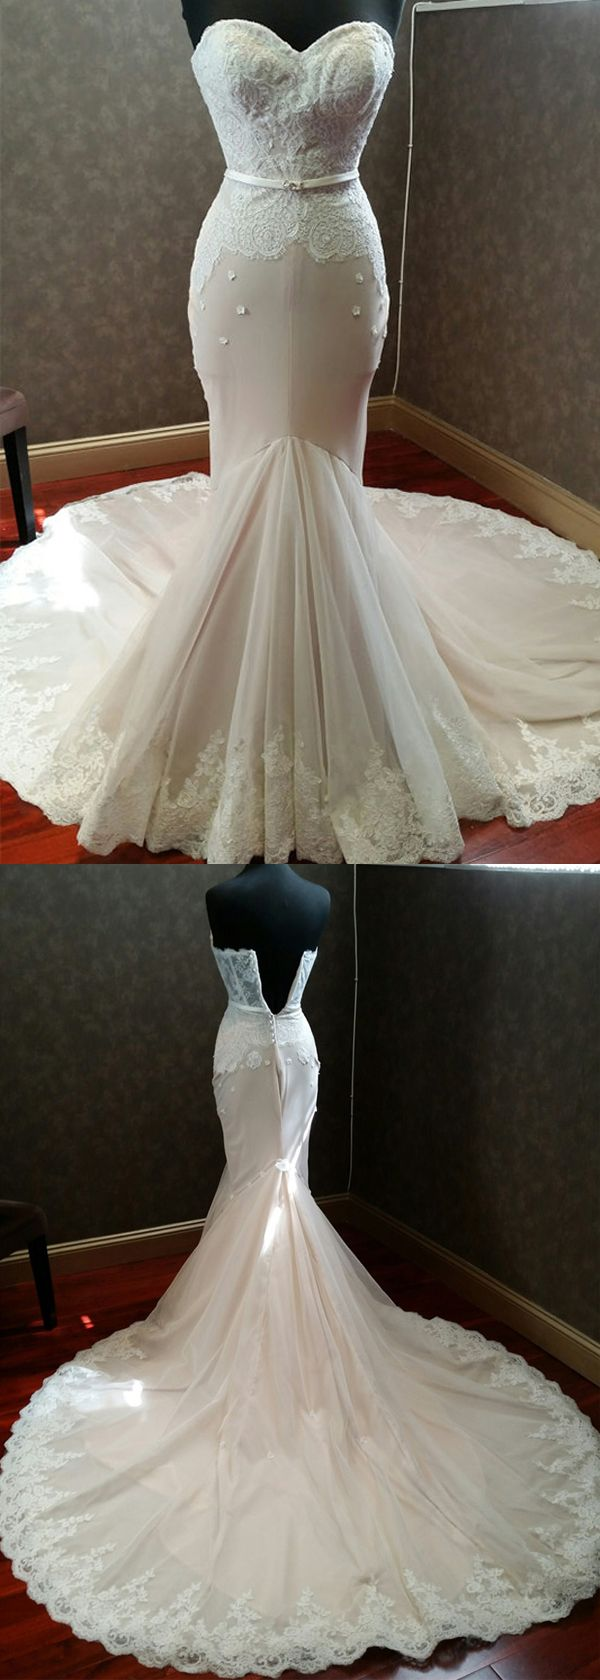 Fabulous Tulle & Organza Sweetheart Neckline Mermaid Wedding Dresses With Lace Appliques